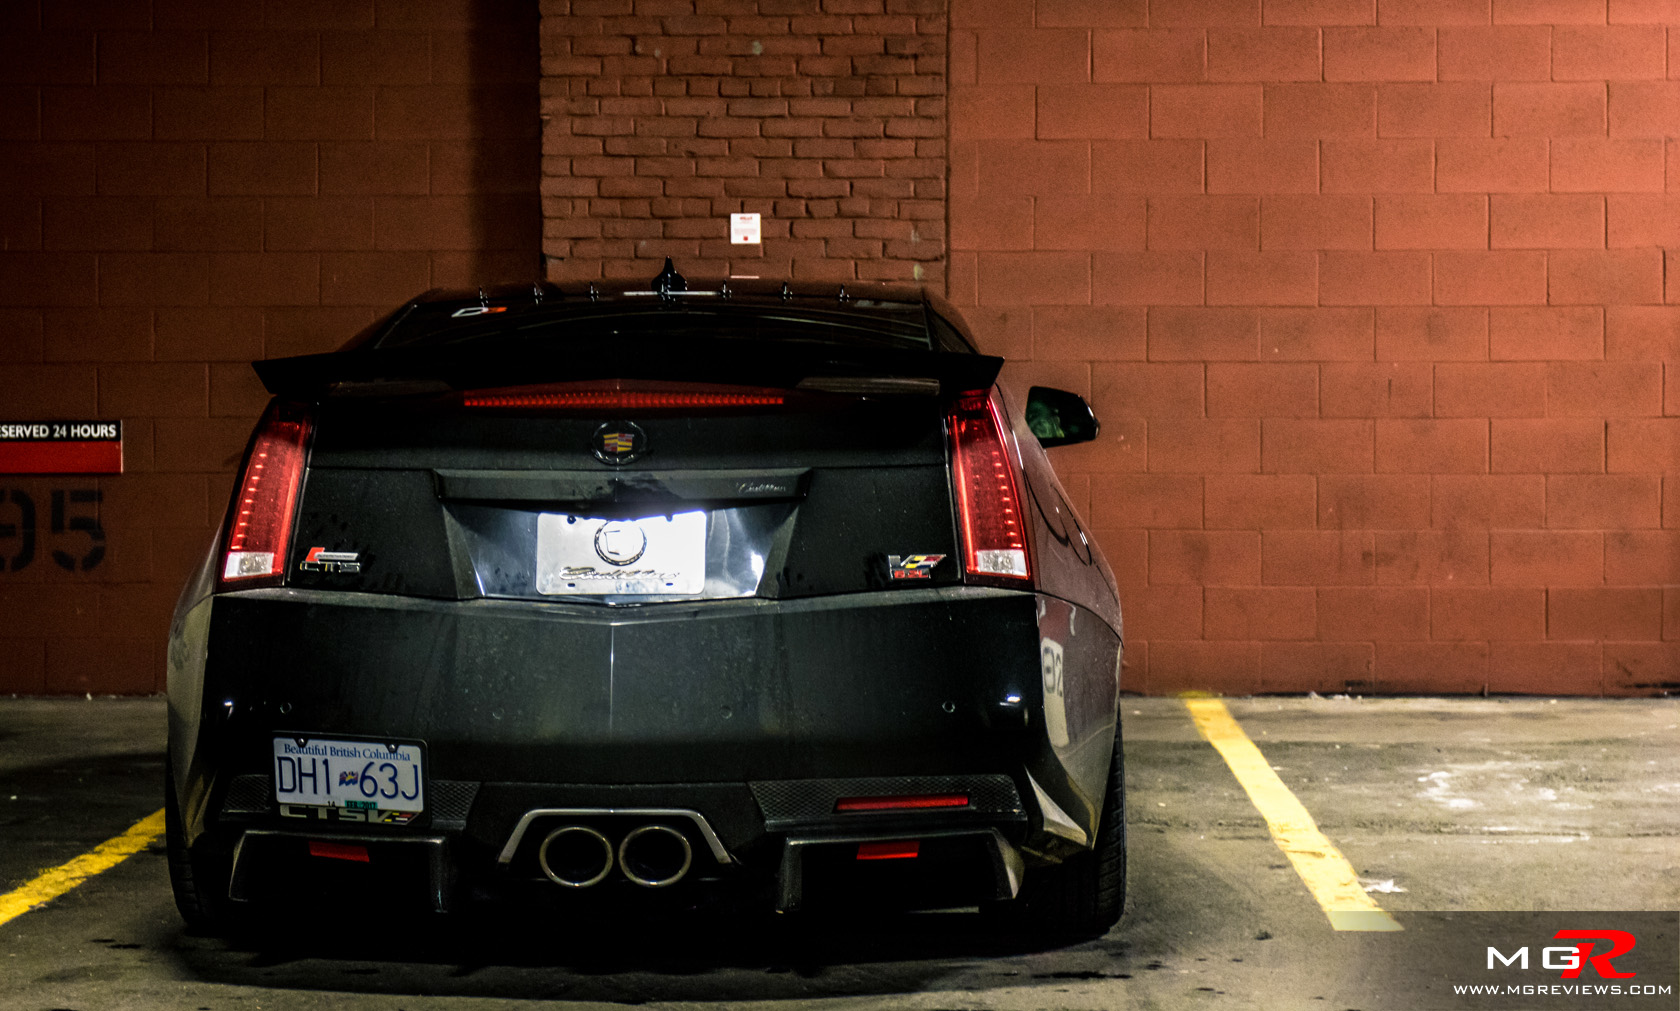 2011 cadillac cts v modified 19 m g reviews. Black Bedroom Furniture Sets. Home Design Ideas